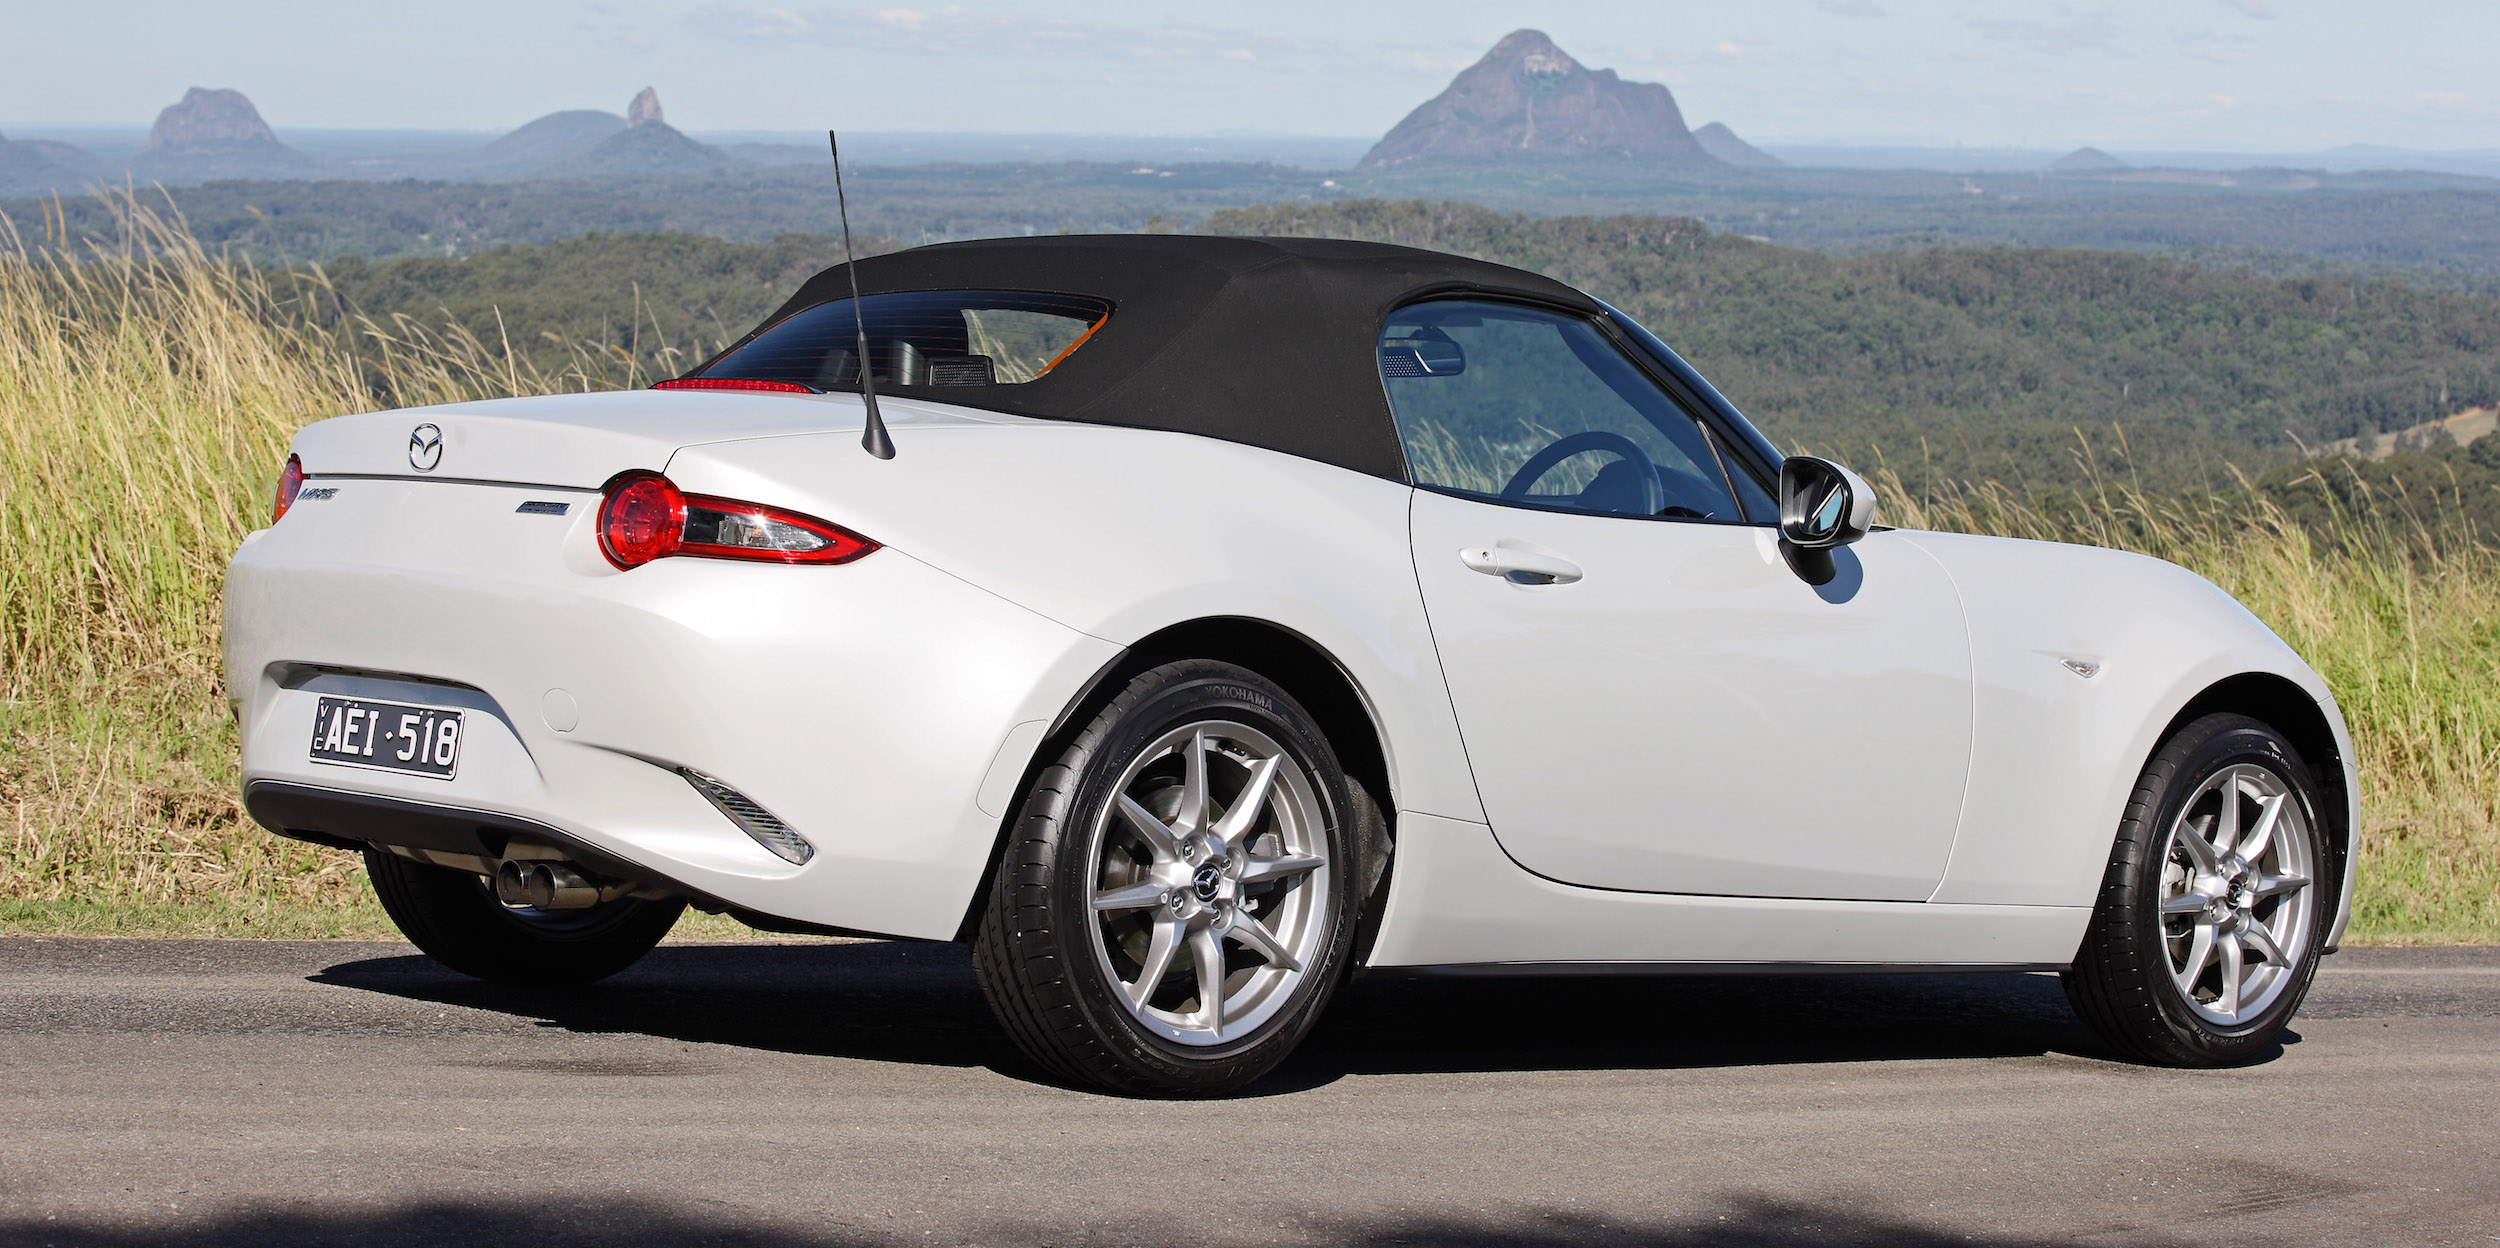 mazda miata 2016 price images galleries with a bite. Black Bedroom Furniture Sets. Home Design Ideas